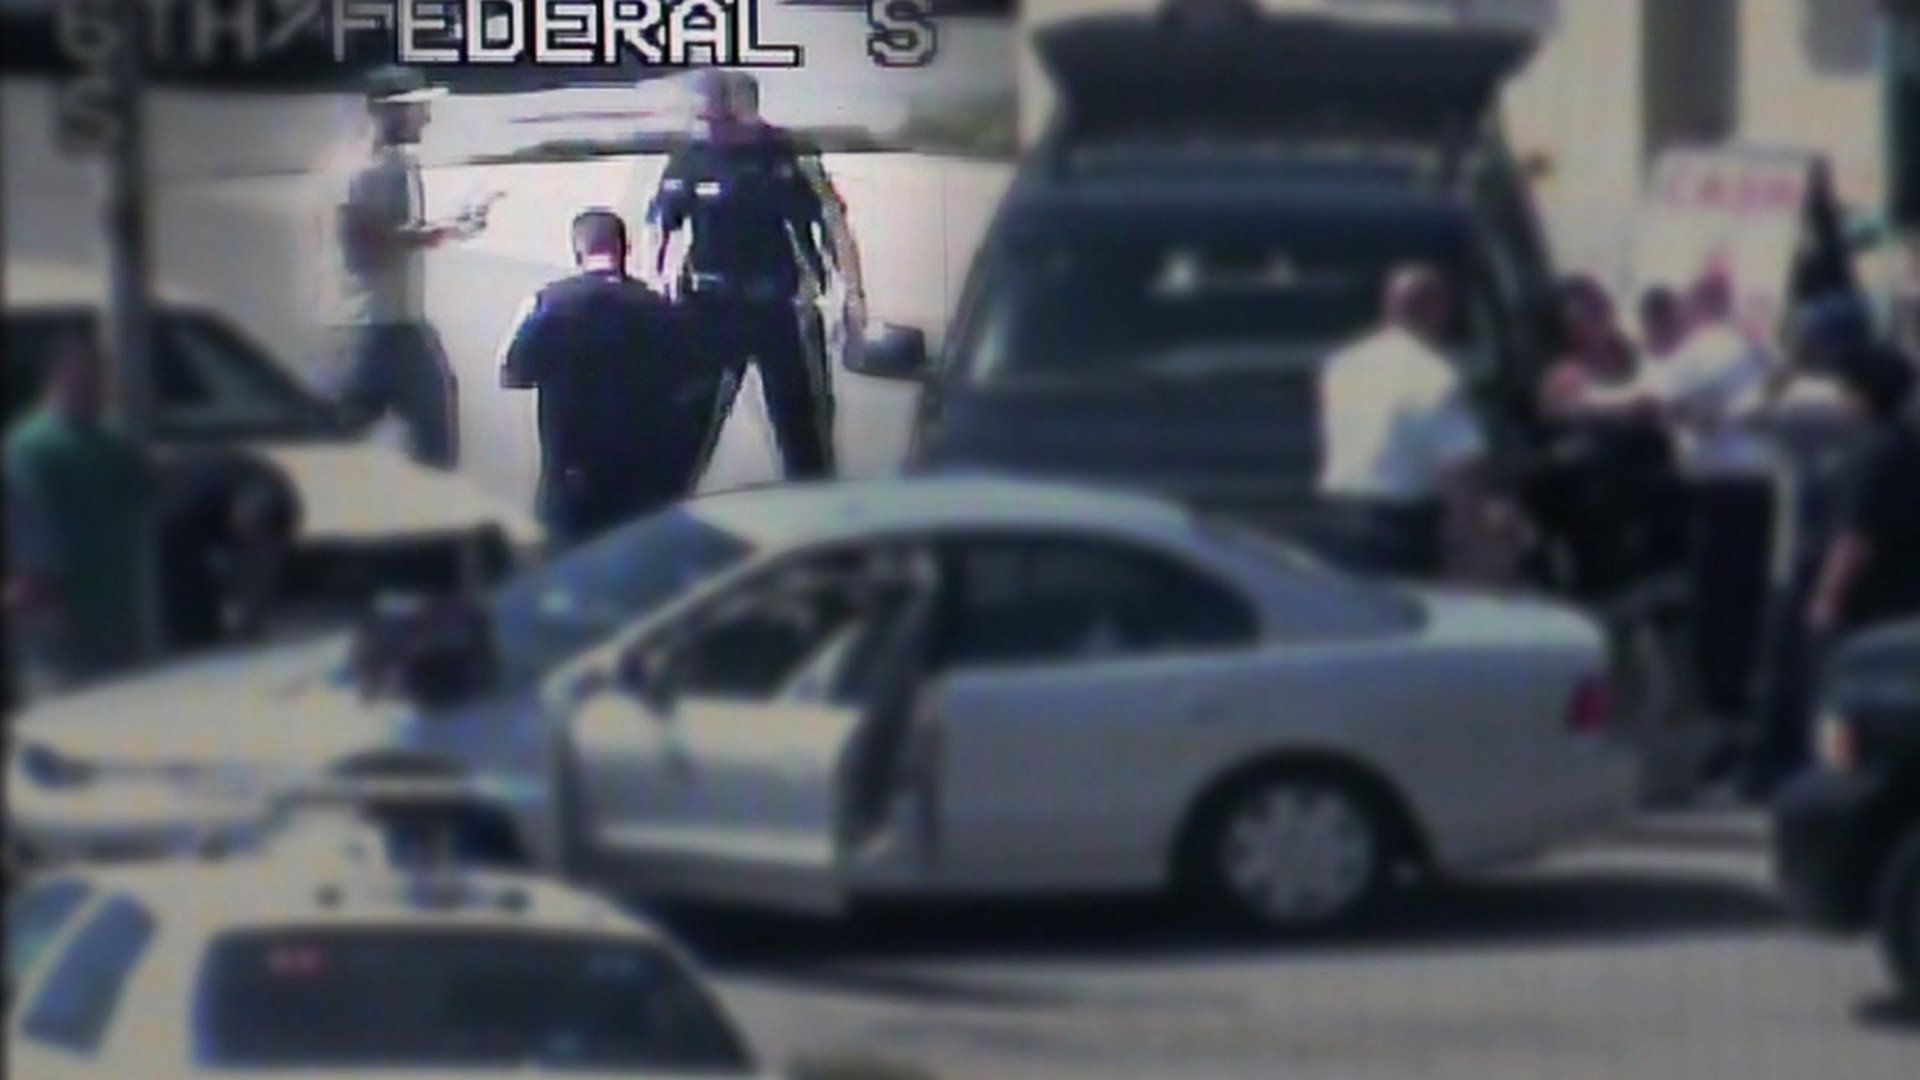 Levi Fraiser, highlighted in the upper left, carries his tablet to a Denver police SUV in this HALO camera image